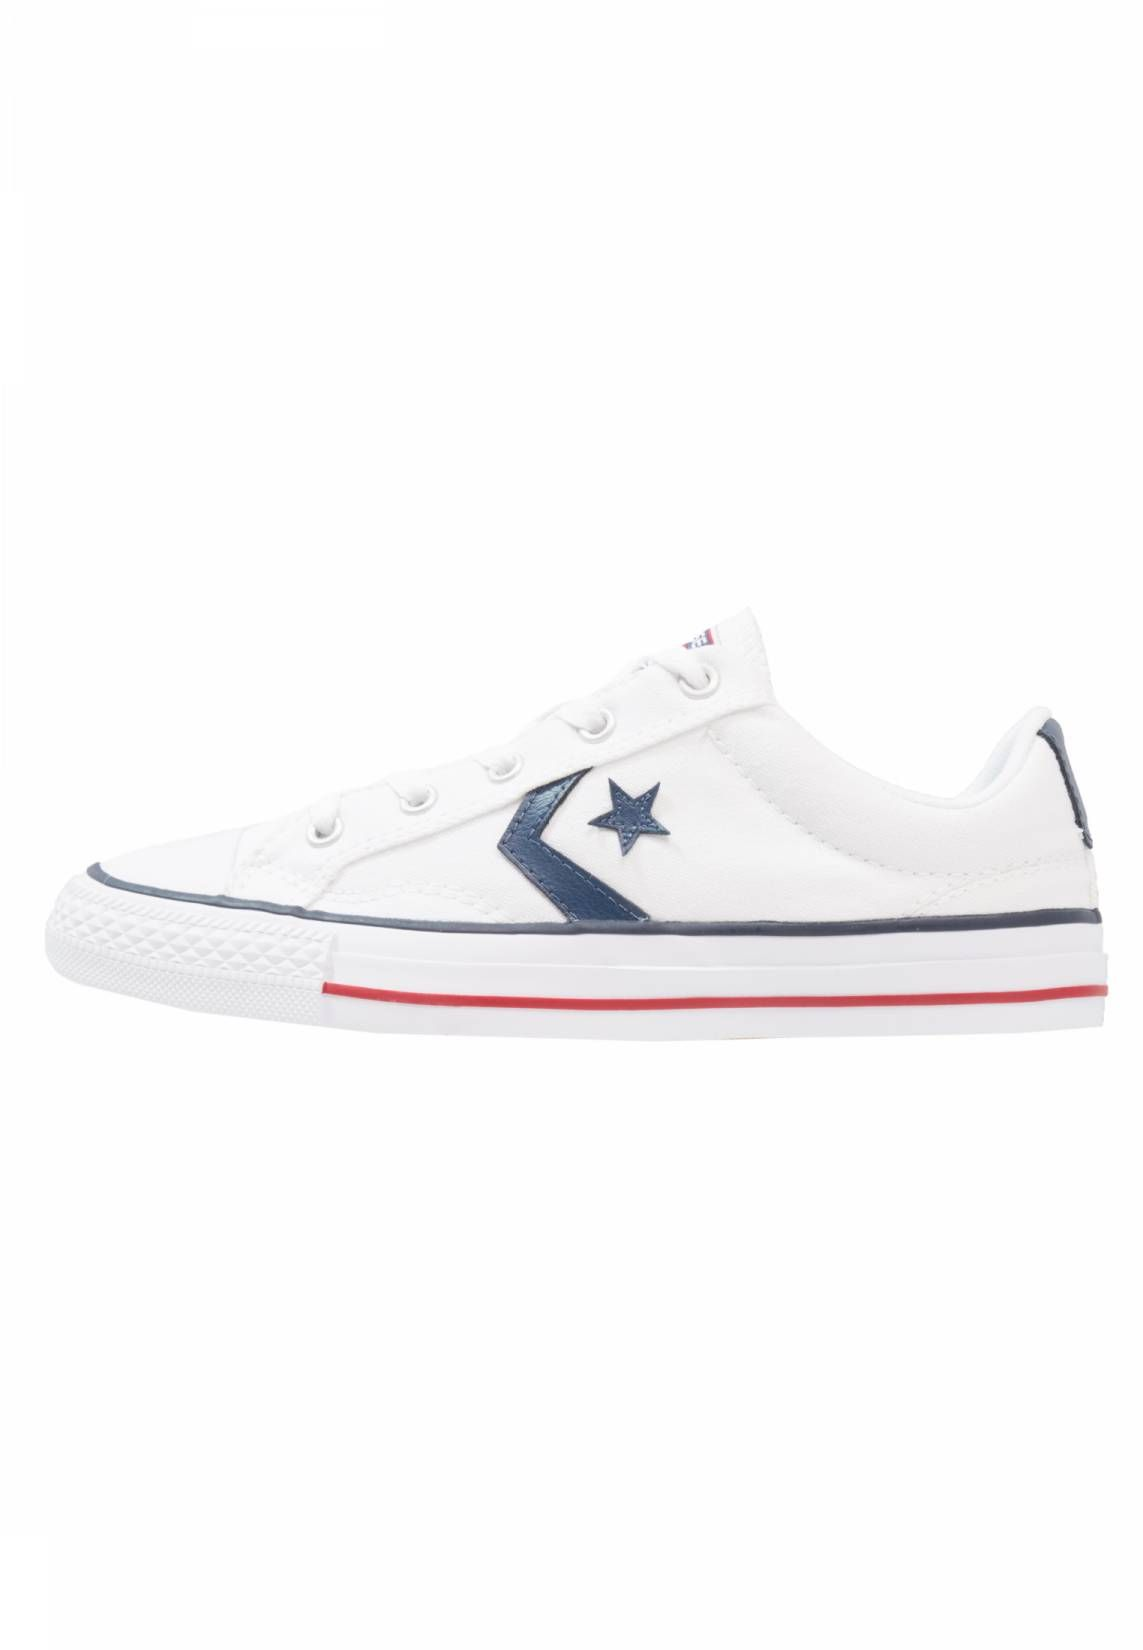 3e8444a5fc8b Converse. STAR PLAYER OX - Sneaker low - white navy. Sohle Kunststoff